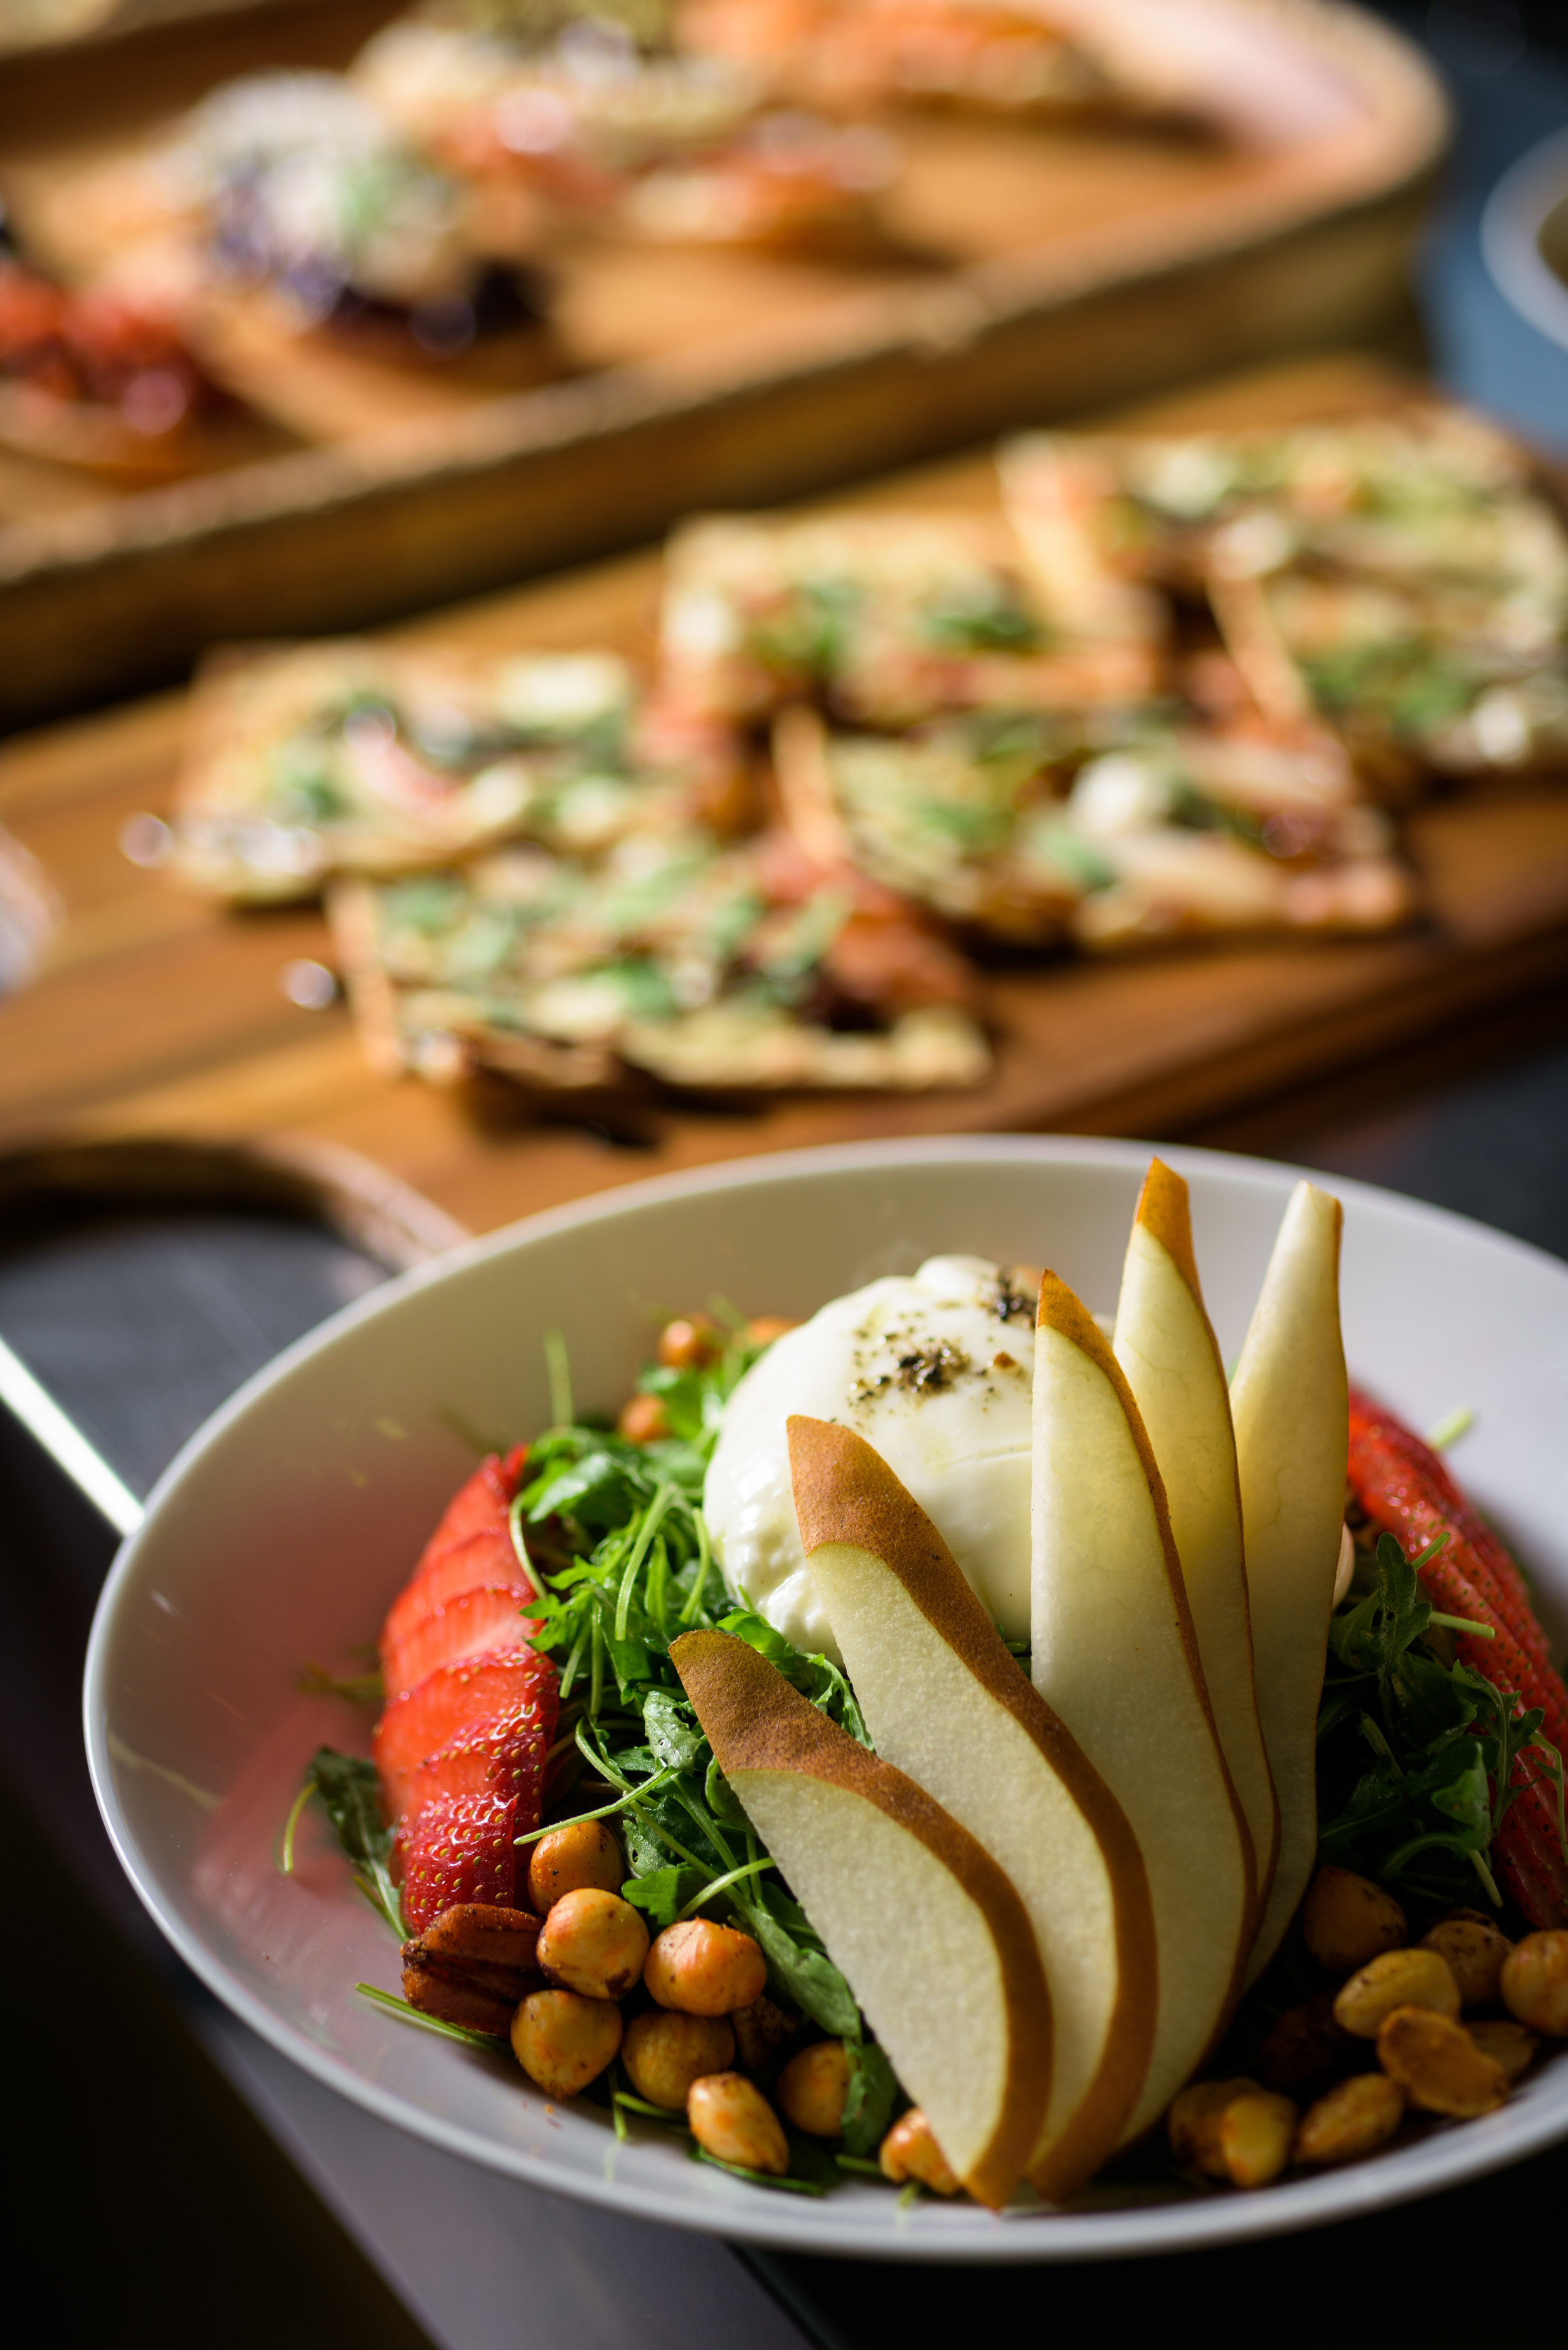 fancy salad – cupertino food photos at rootstock wine bar - photos by bay area commercial photographer chris schmauch